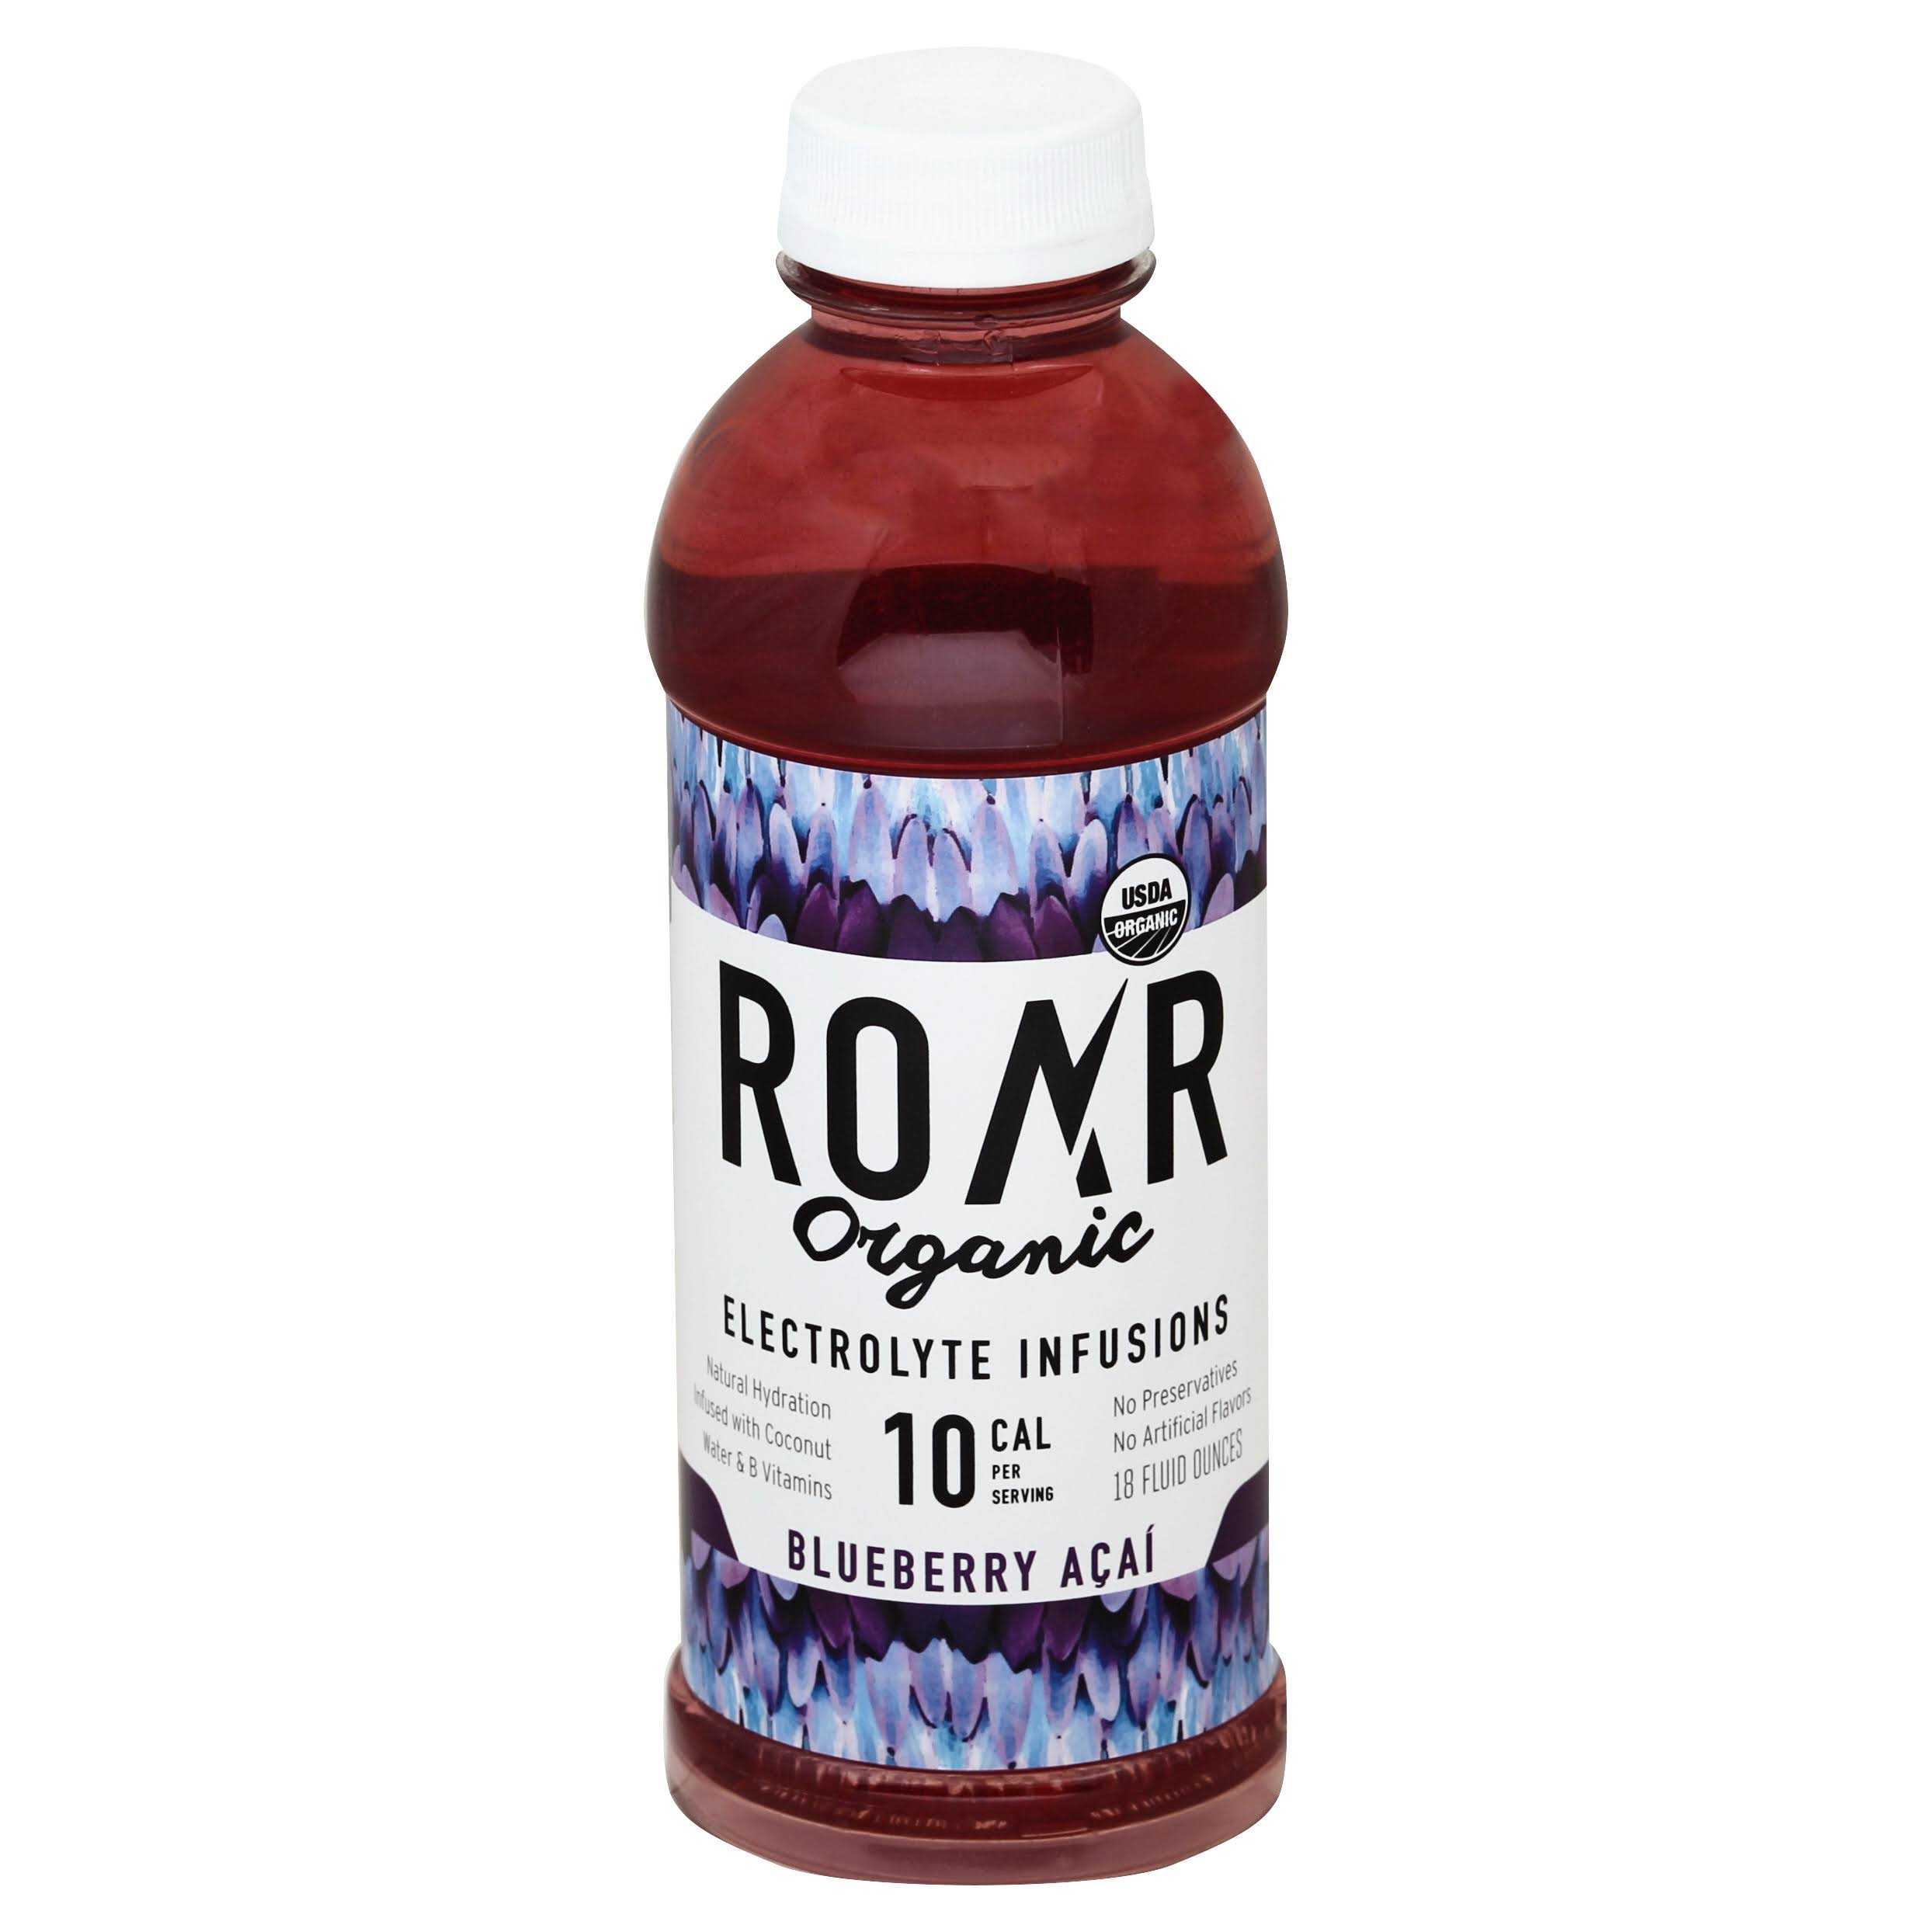 Roar Organic Electrolyte Infusions, Blueberry Acai - 18 fluid ounces